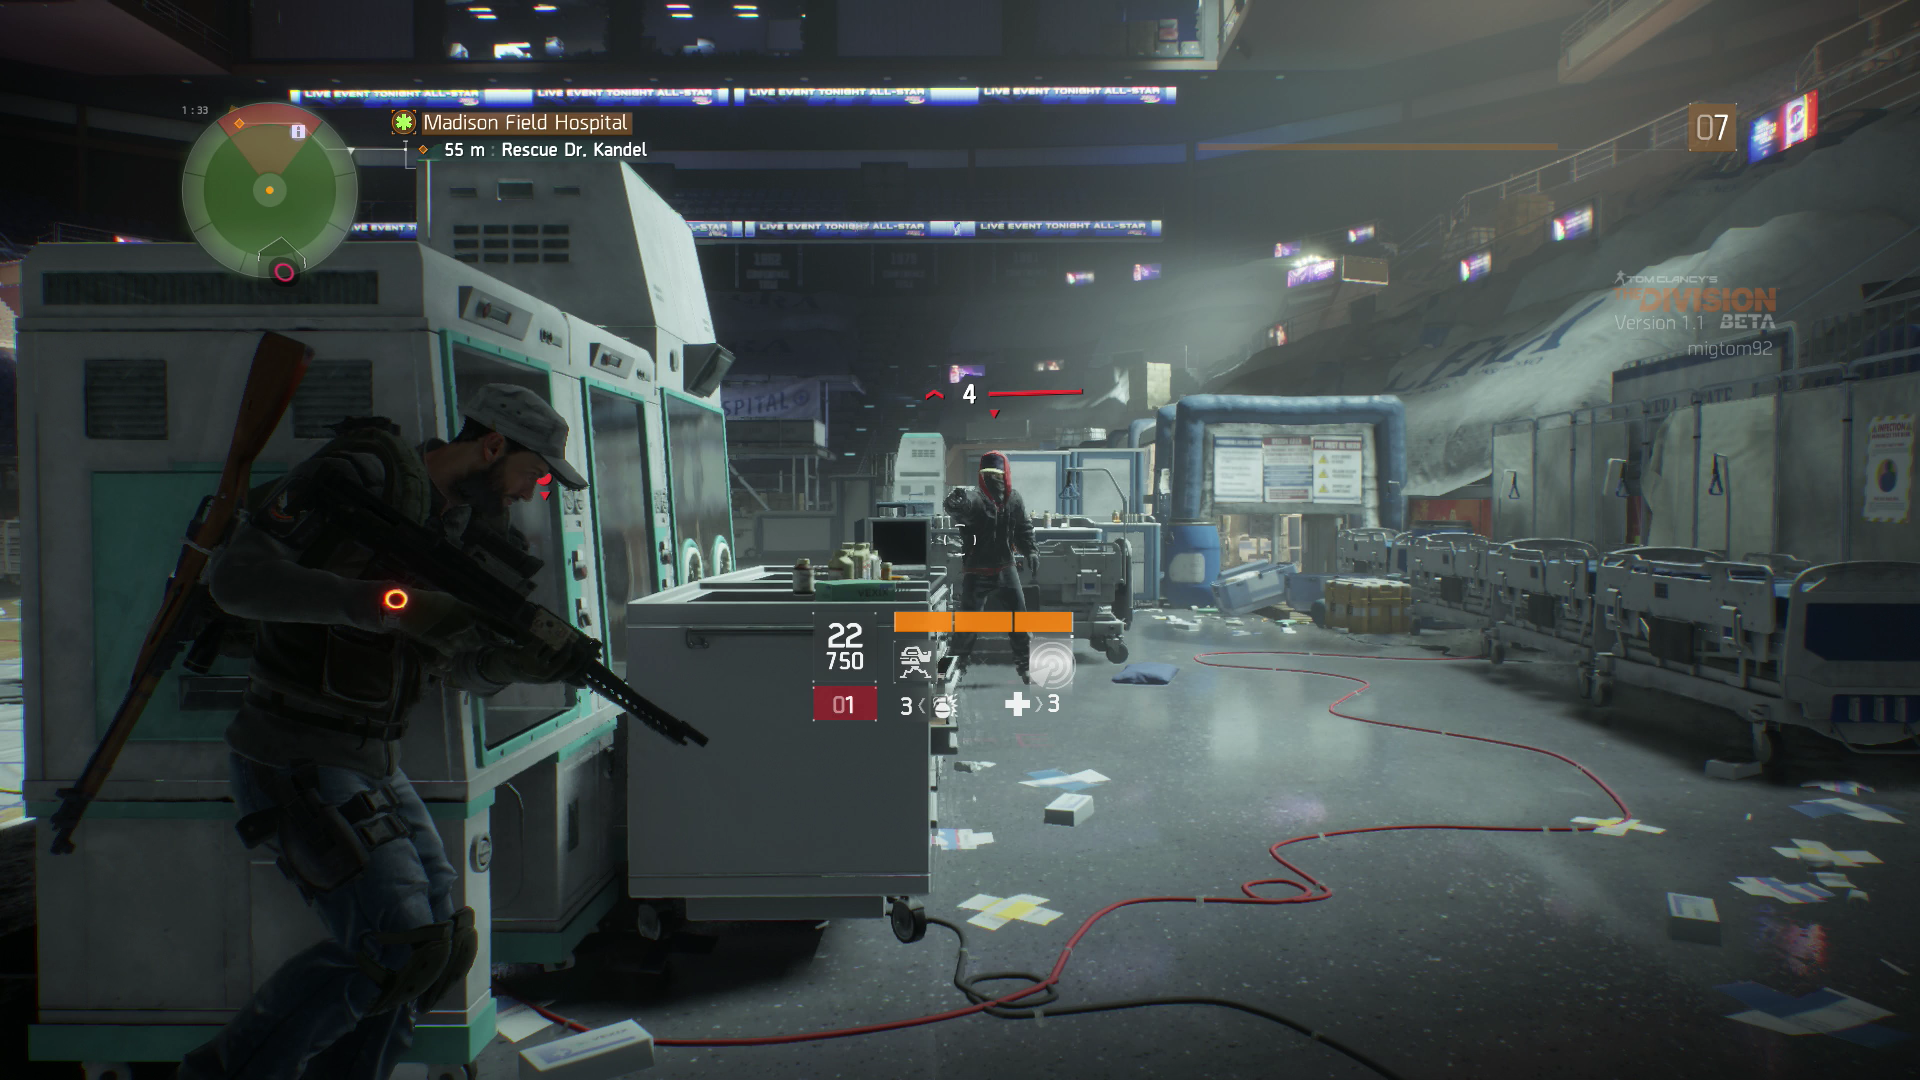 The Division Screen Shot 2016-02-23 05-30-11